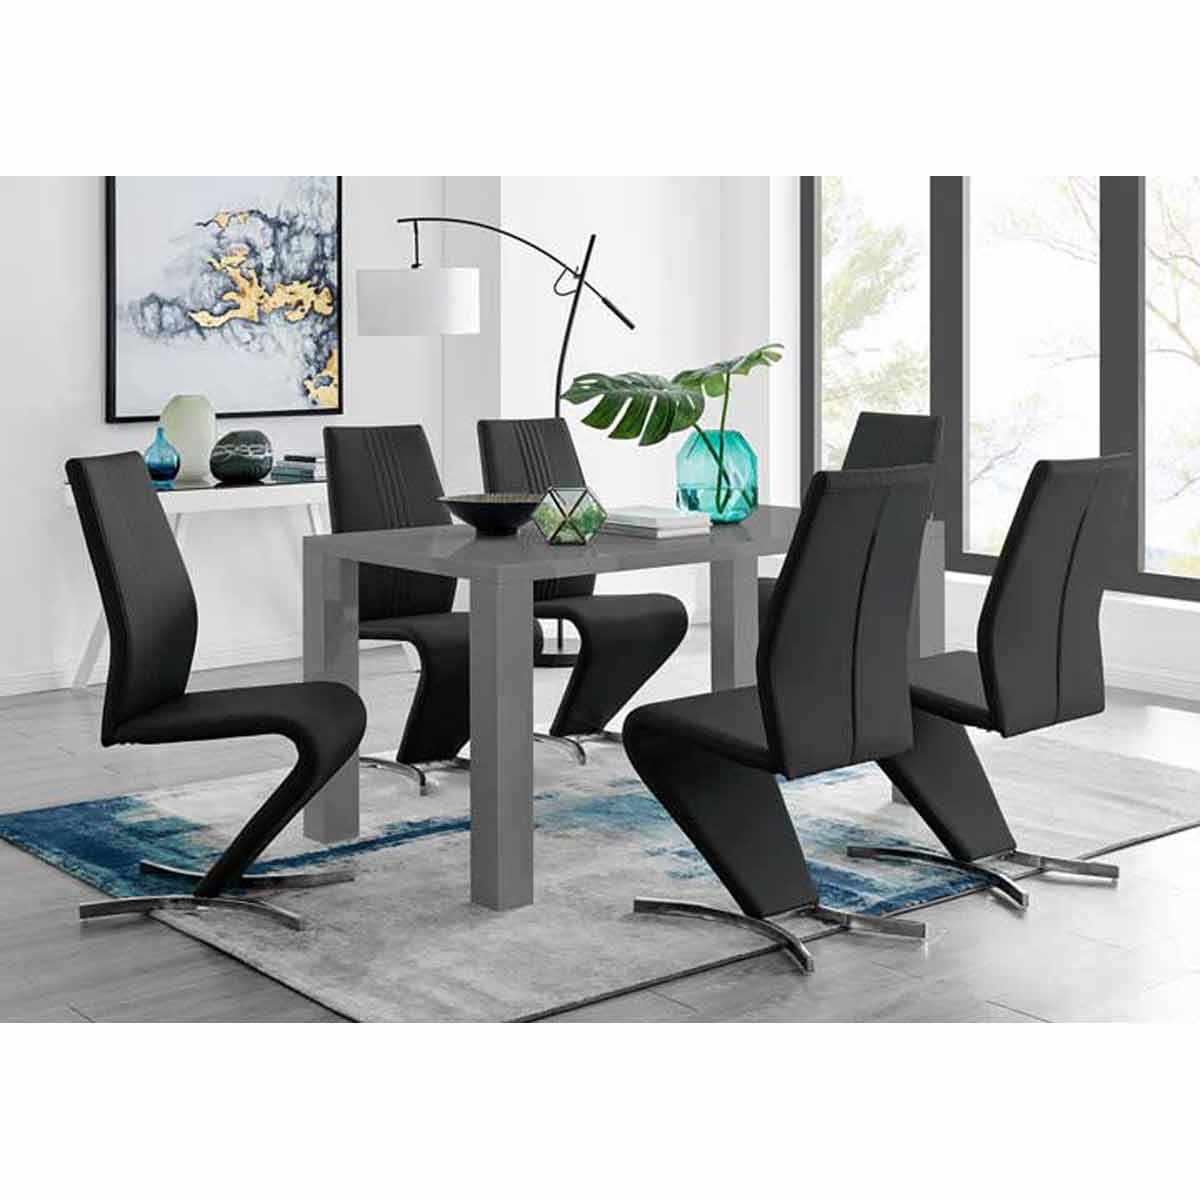 Furniture Box Pivero Grey High Gloss Dining Table And 6 Luxury Black Willow Chairs Set